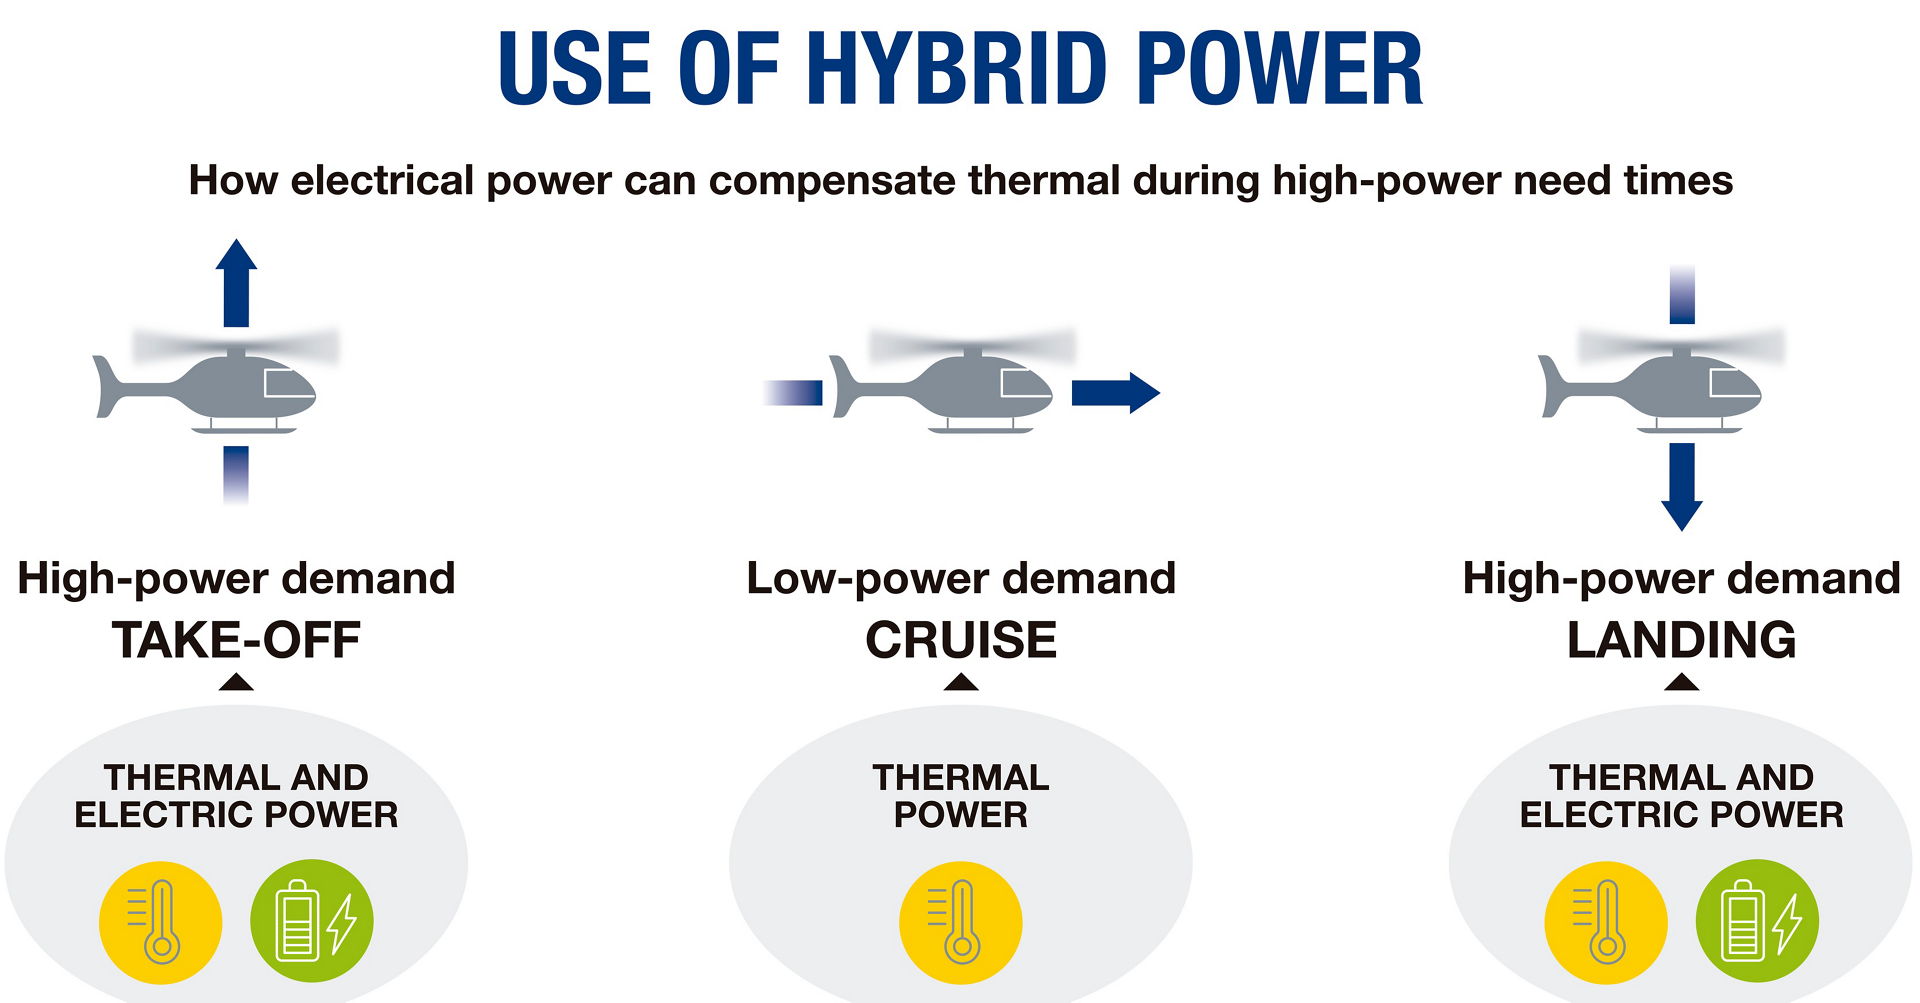 """Hybridisation enables us to optimise,"" says Luca Cossetti, Innovative Power Solutions at Airbus Helicopters. ""You could use the thermal engine in certain phases of flight, thereby optimising its efficiency and consumption for that specific situation, and compensate with electrical power when the power demand is higher (such as during take-off and landing for a rotorcraft)."""